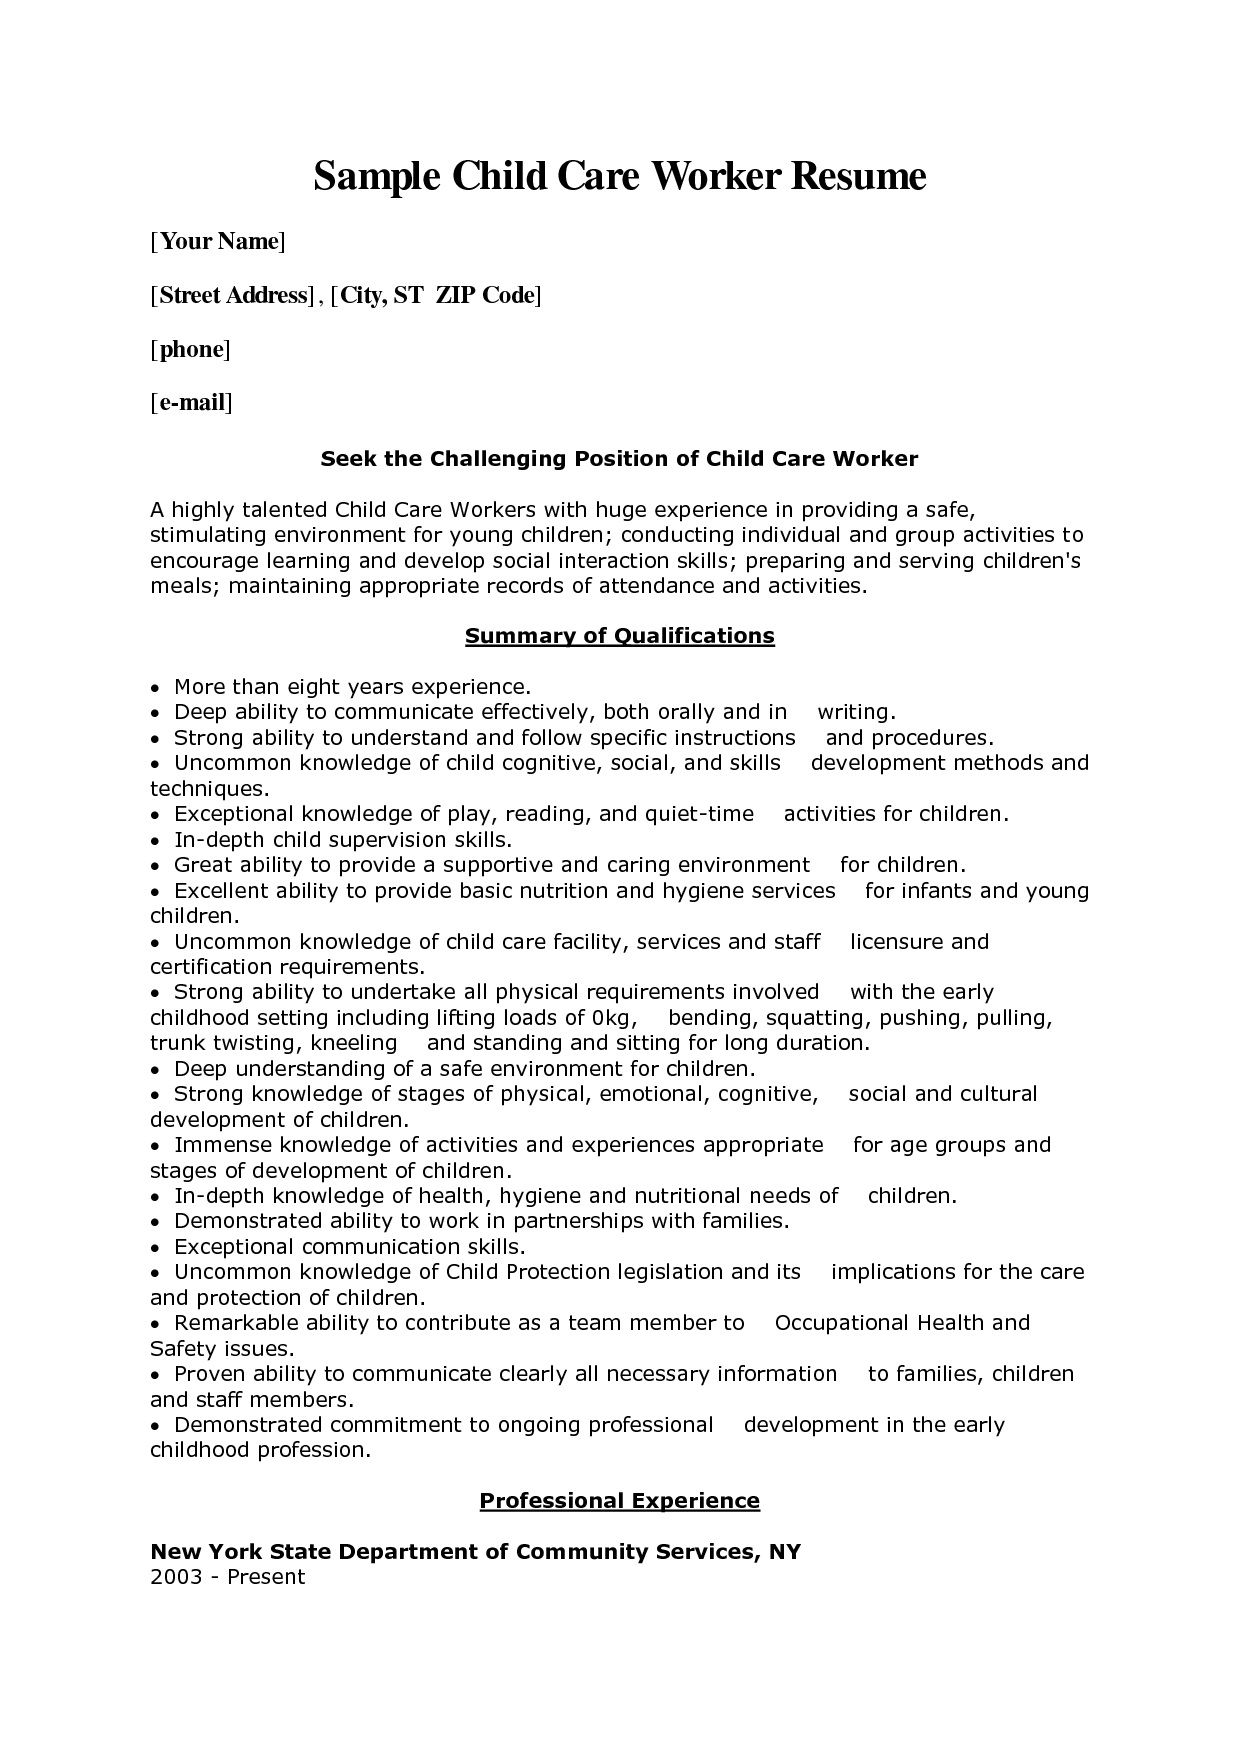 Child Care Provider Resume Child Care Worker Cover Letter Sample  Child Care Worker Cover .